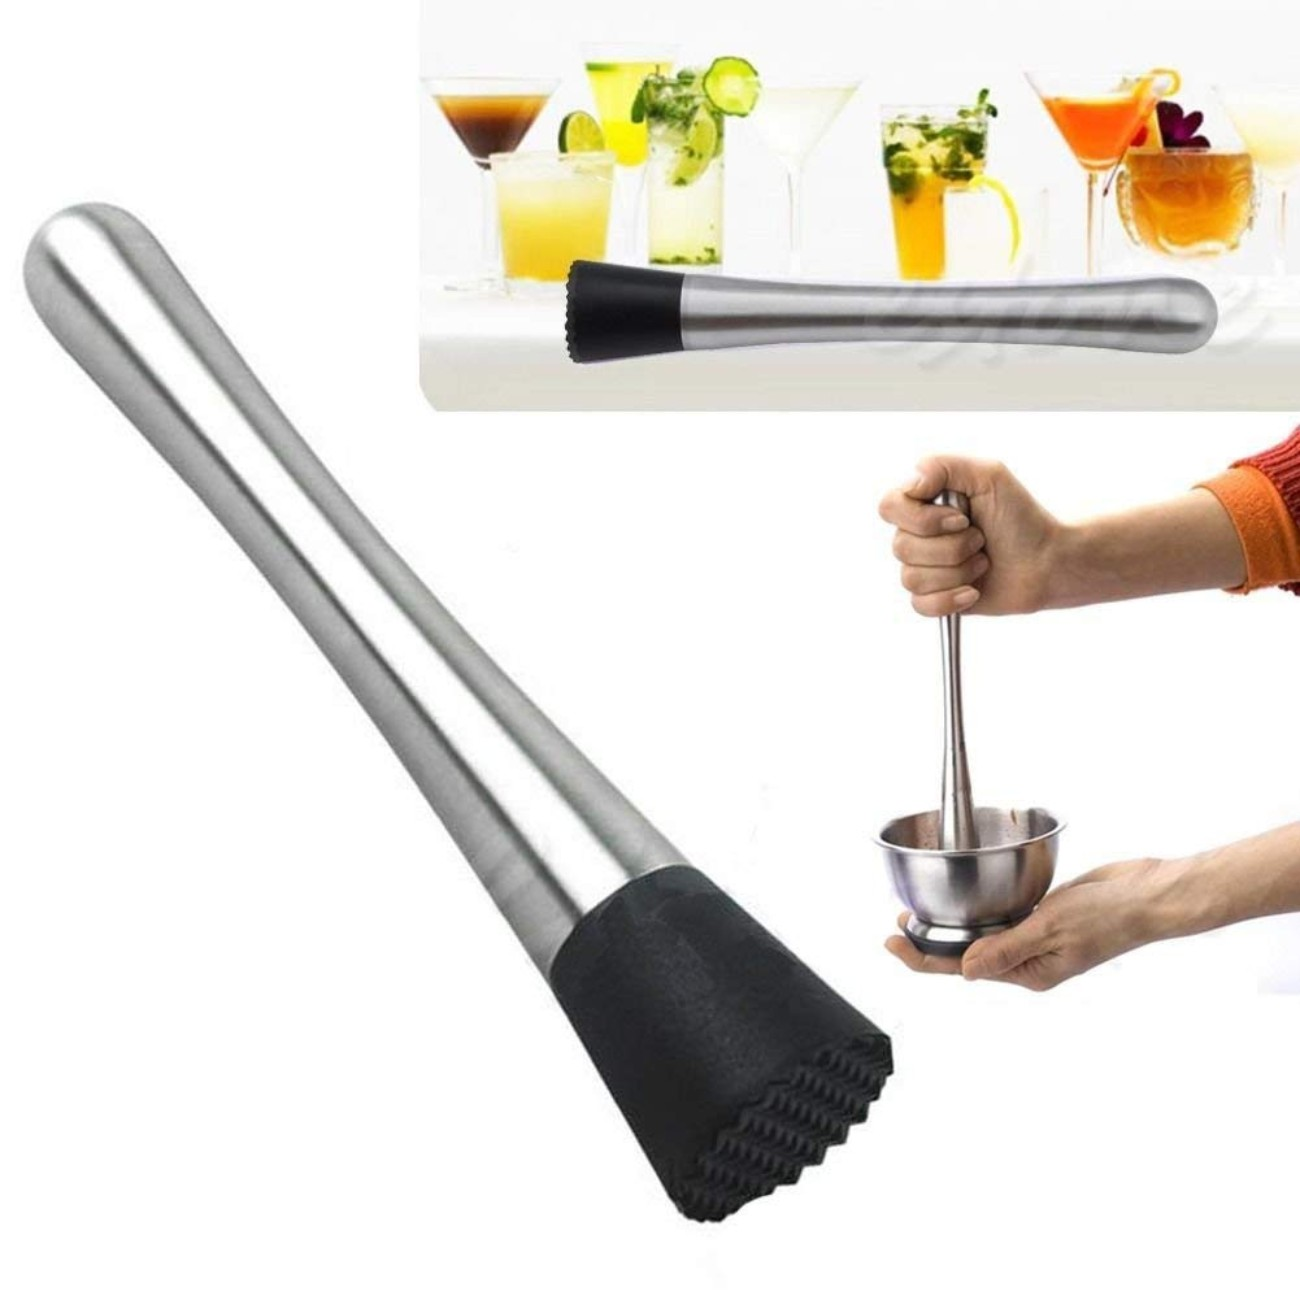 "Stainless Steel Ideal Bartender Tool Muddler & Mix The Perfect Cocktail Right at Home Using 8"" in Stainless Steel Pestle/Grooved Nylon Head"